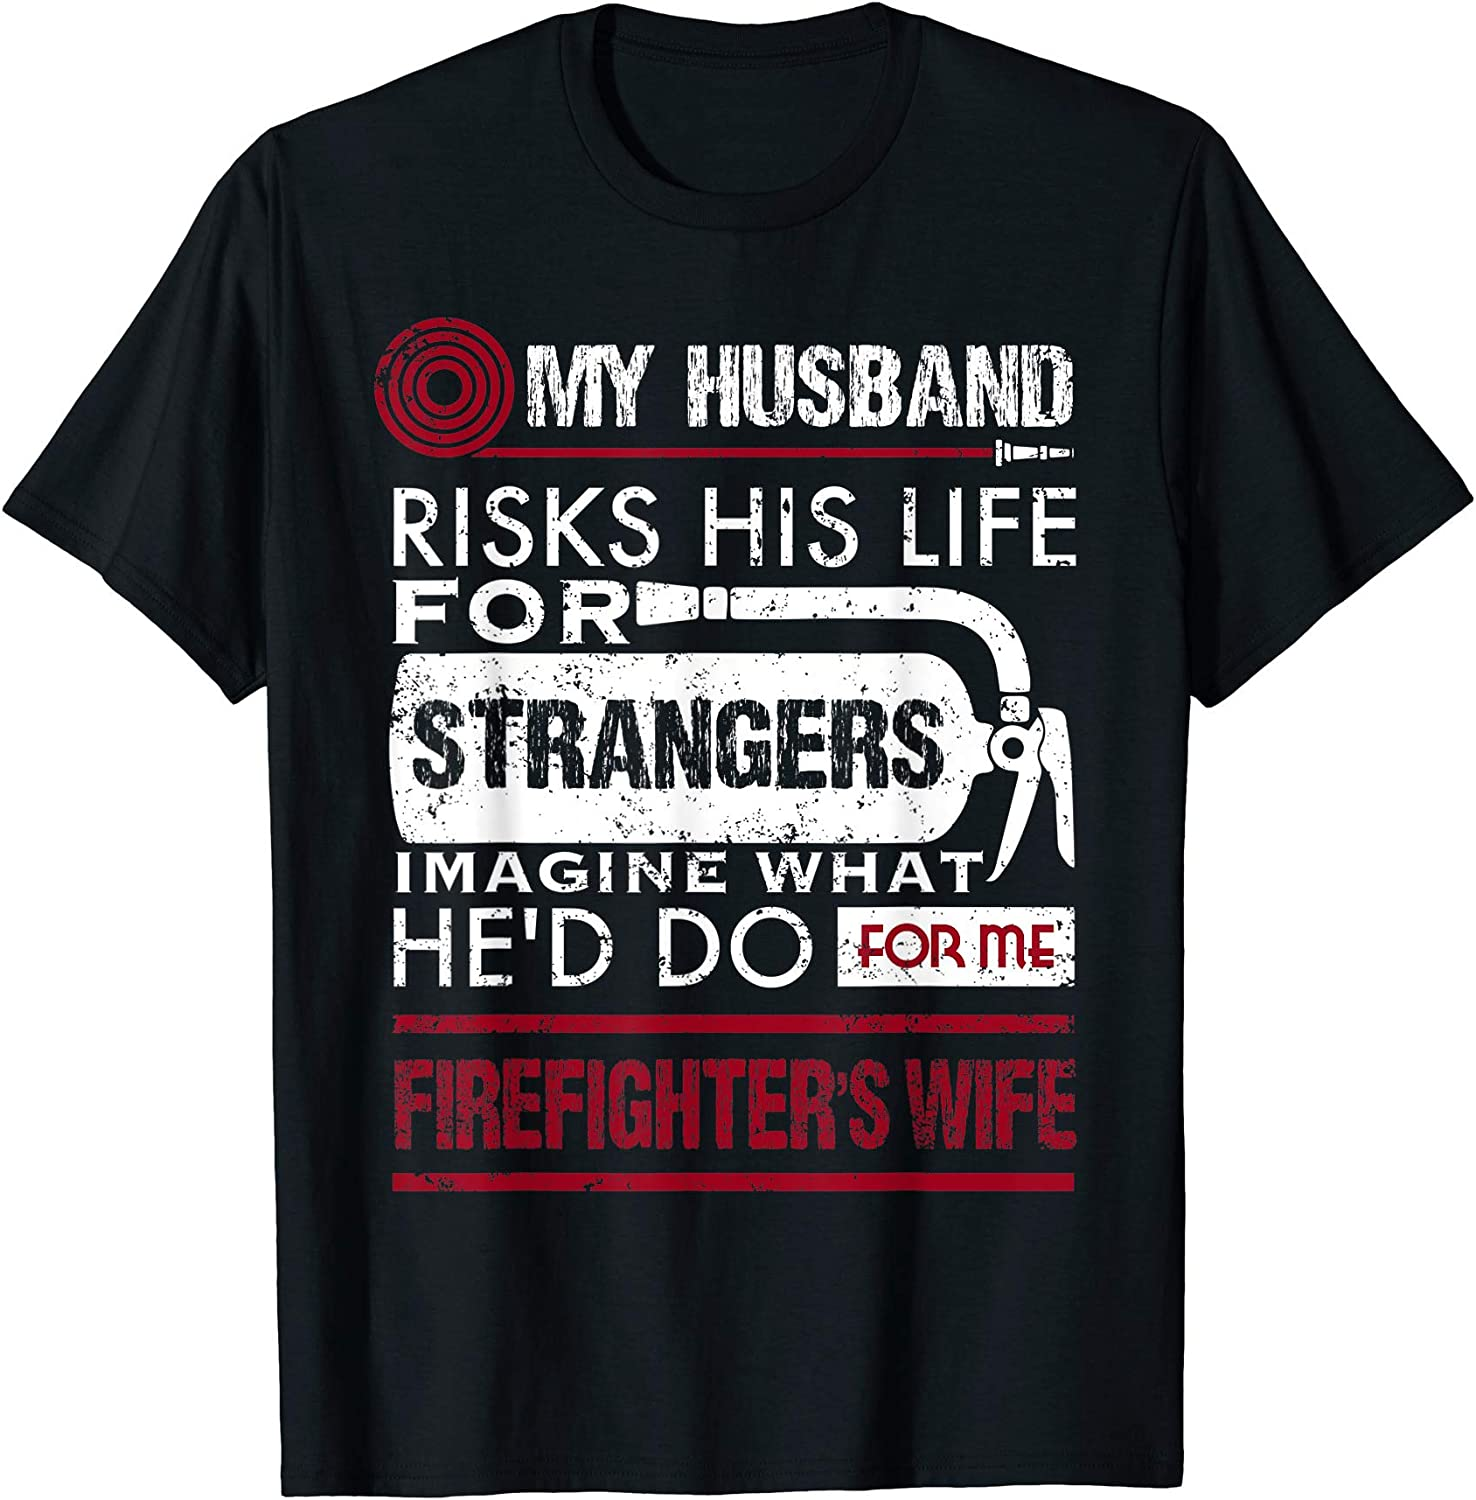 Dilostyle Nurses Mom 2020 My Son Risks Her Life to Save Strangers Shirt 79